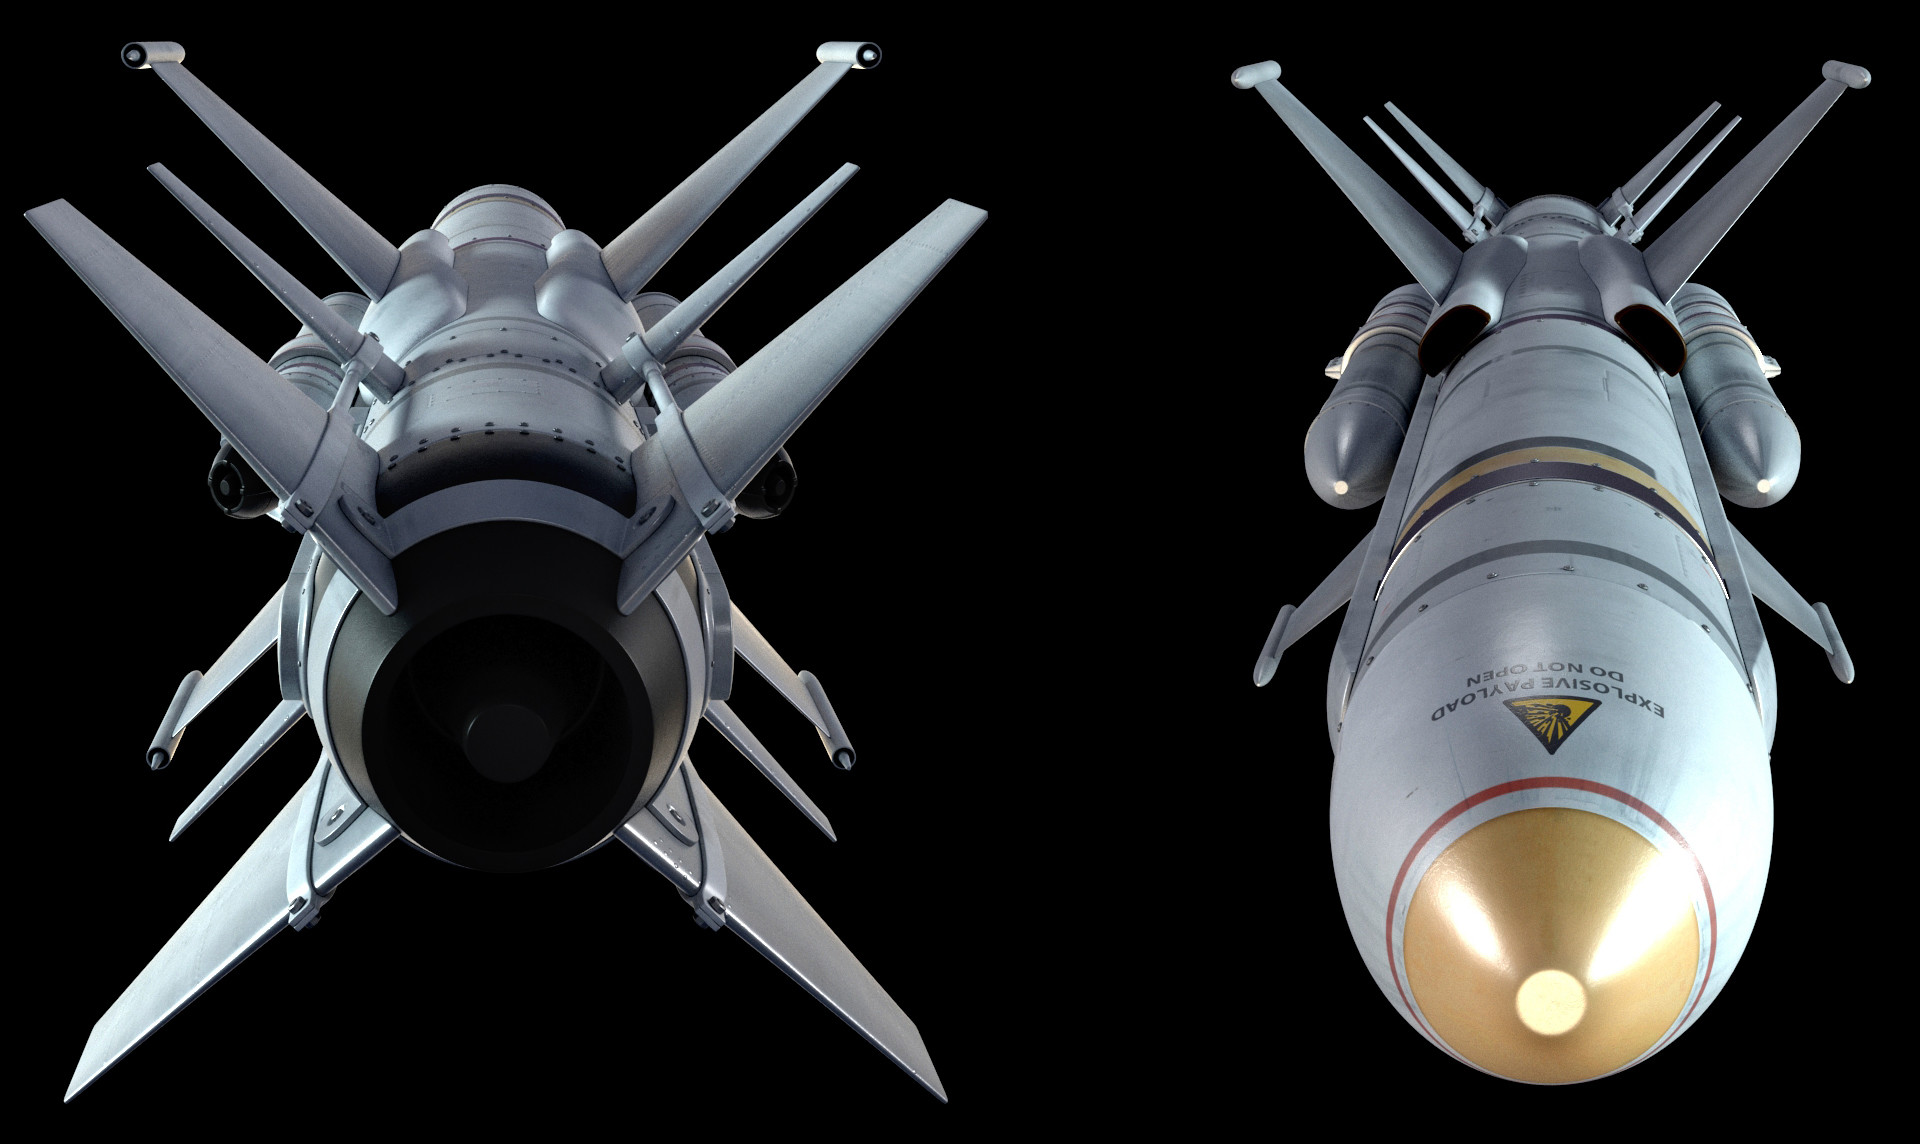 Back and front view.  Not an overly difficult or complex model, but it was a lot of fun to be able to make a quick rocket.